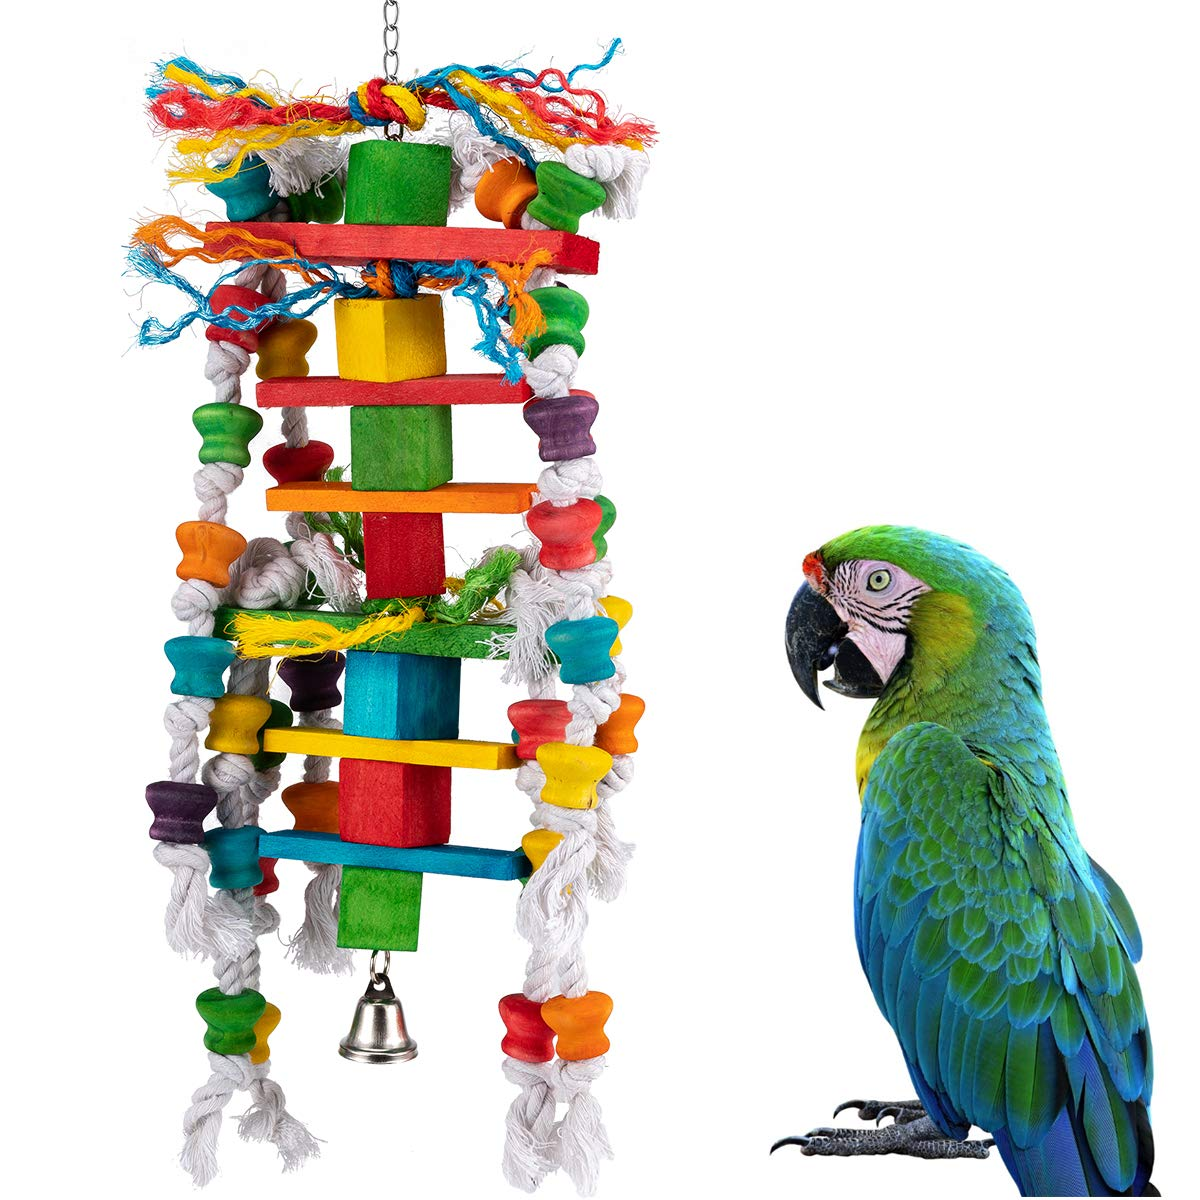 MEWTOGO Bird Parrot Chewing Toys- Multicolored Natural Wooden Knots Blocks Waterfall Bird Tearing Entertaining Toys Suggested for Conures Cockatiels African Grey Foraging and Amazon Parrot by MEWTOGO